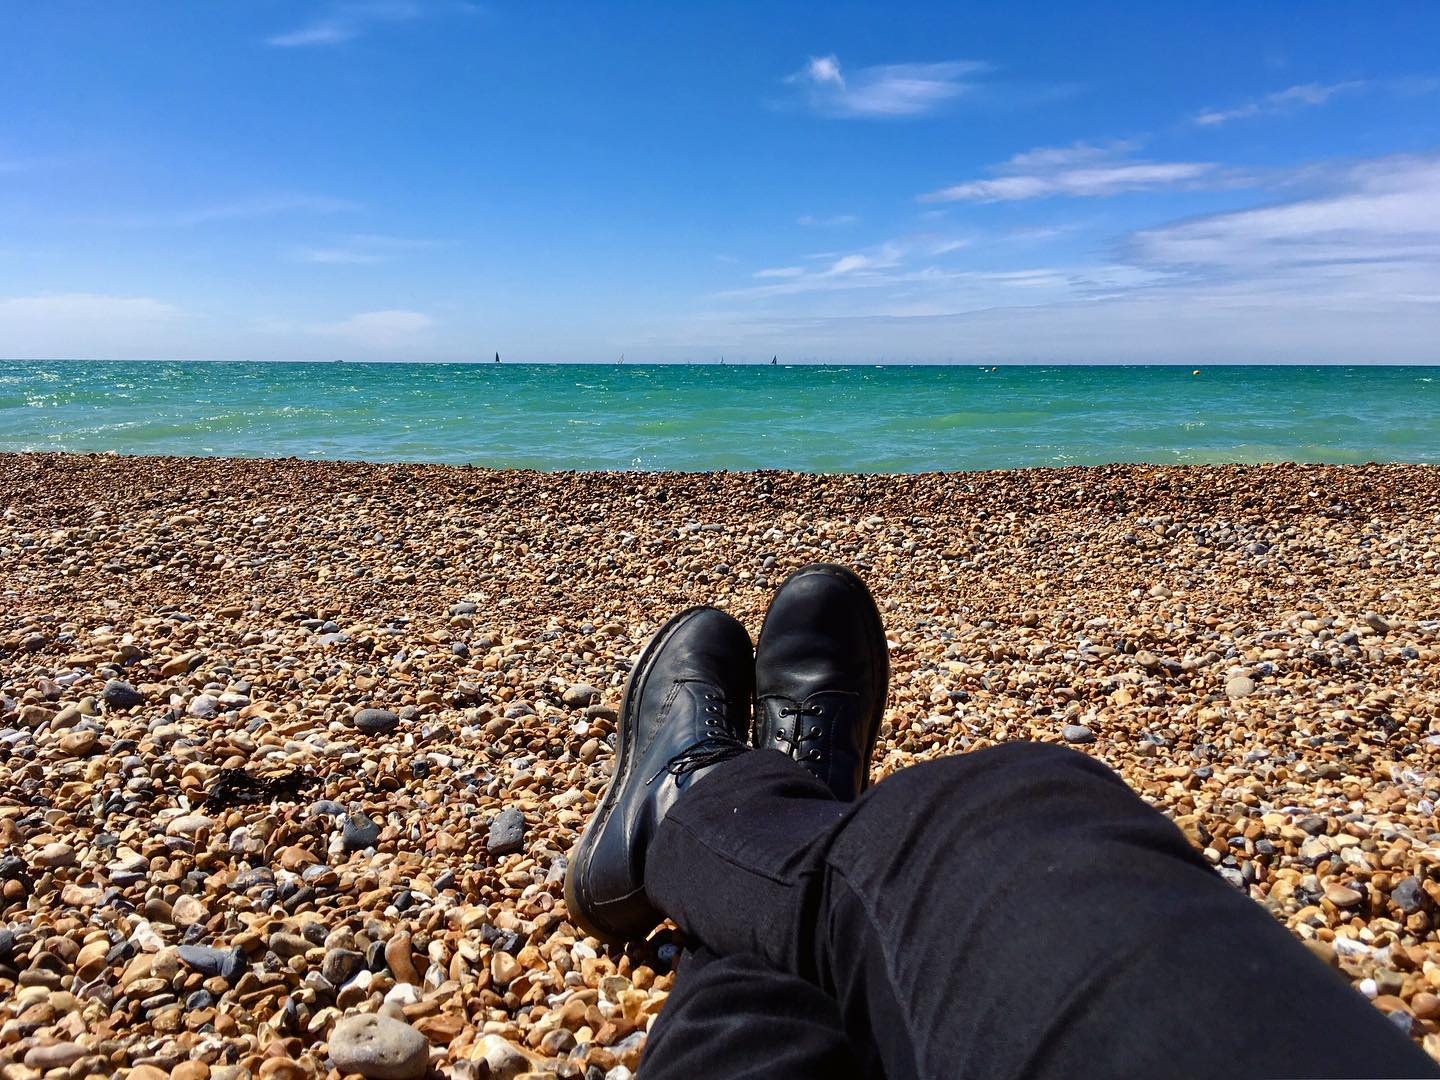 Working on my tan at the beach in Brighton.